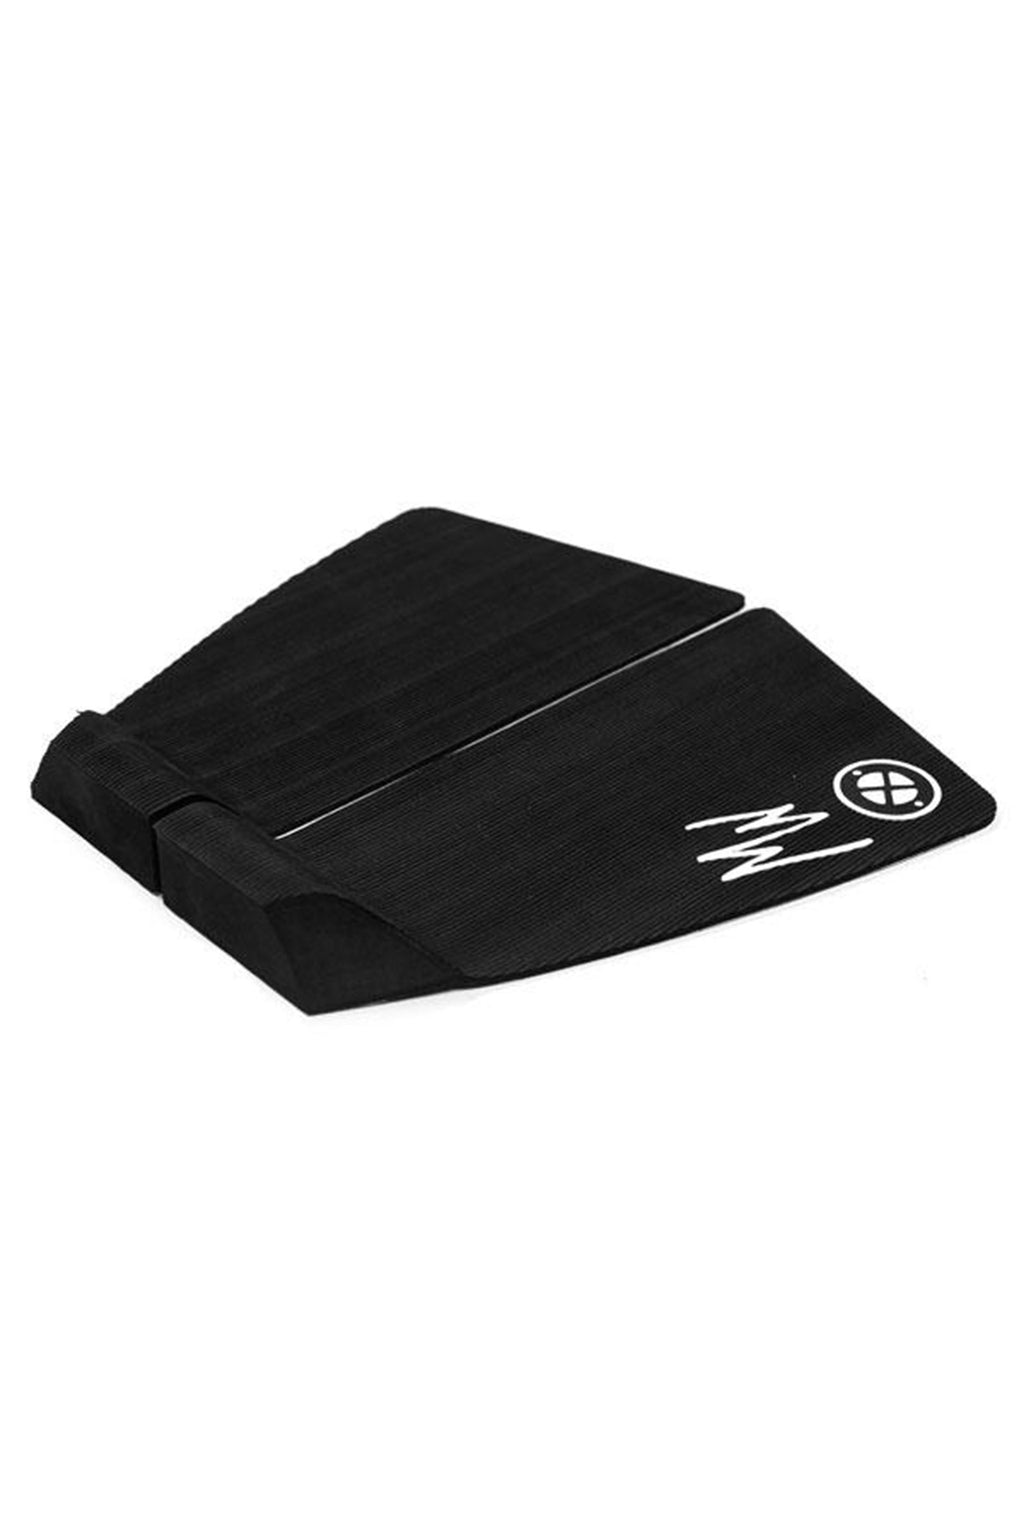 MIKEY WRIGHT SIGNATURE TAIL PAD